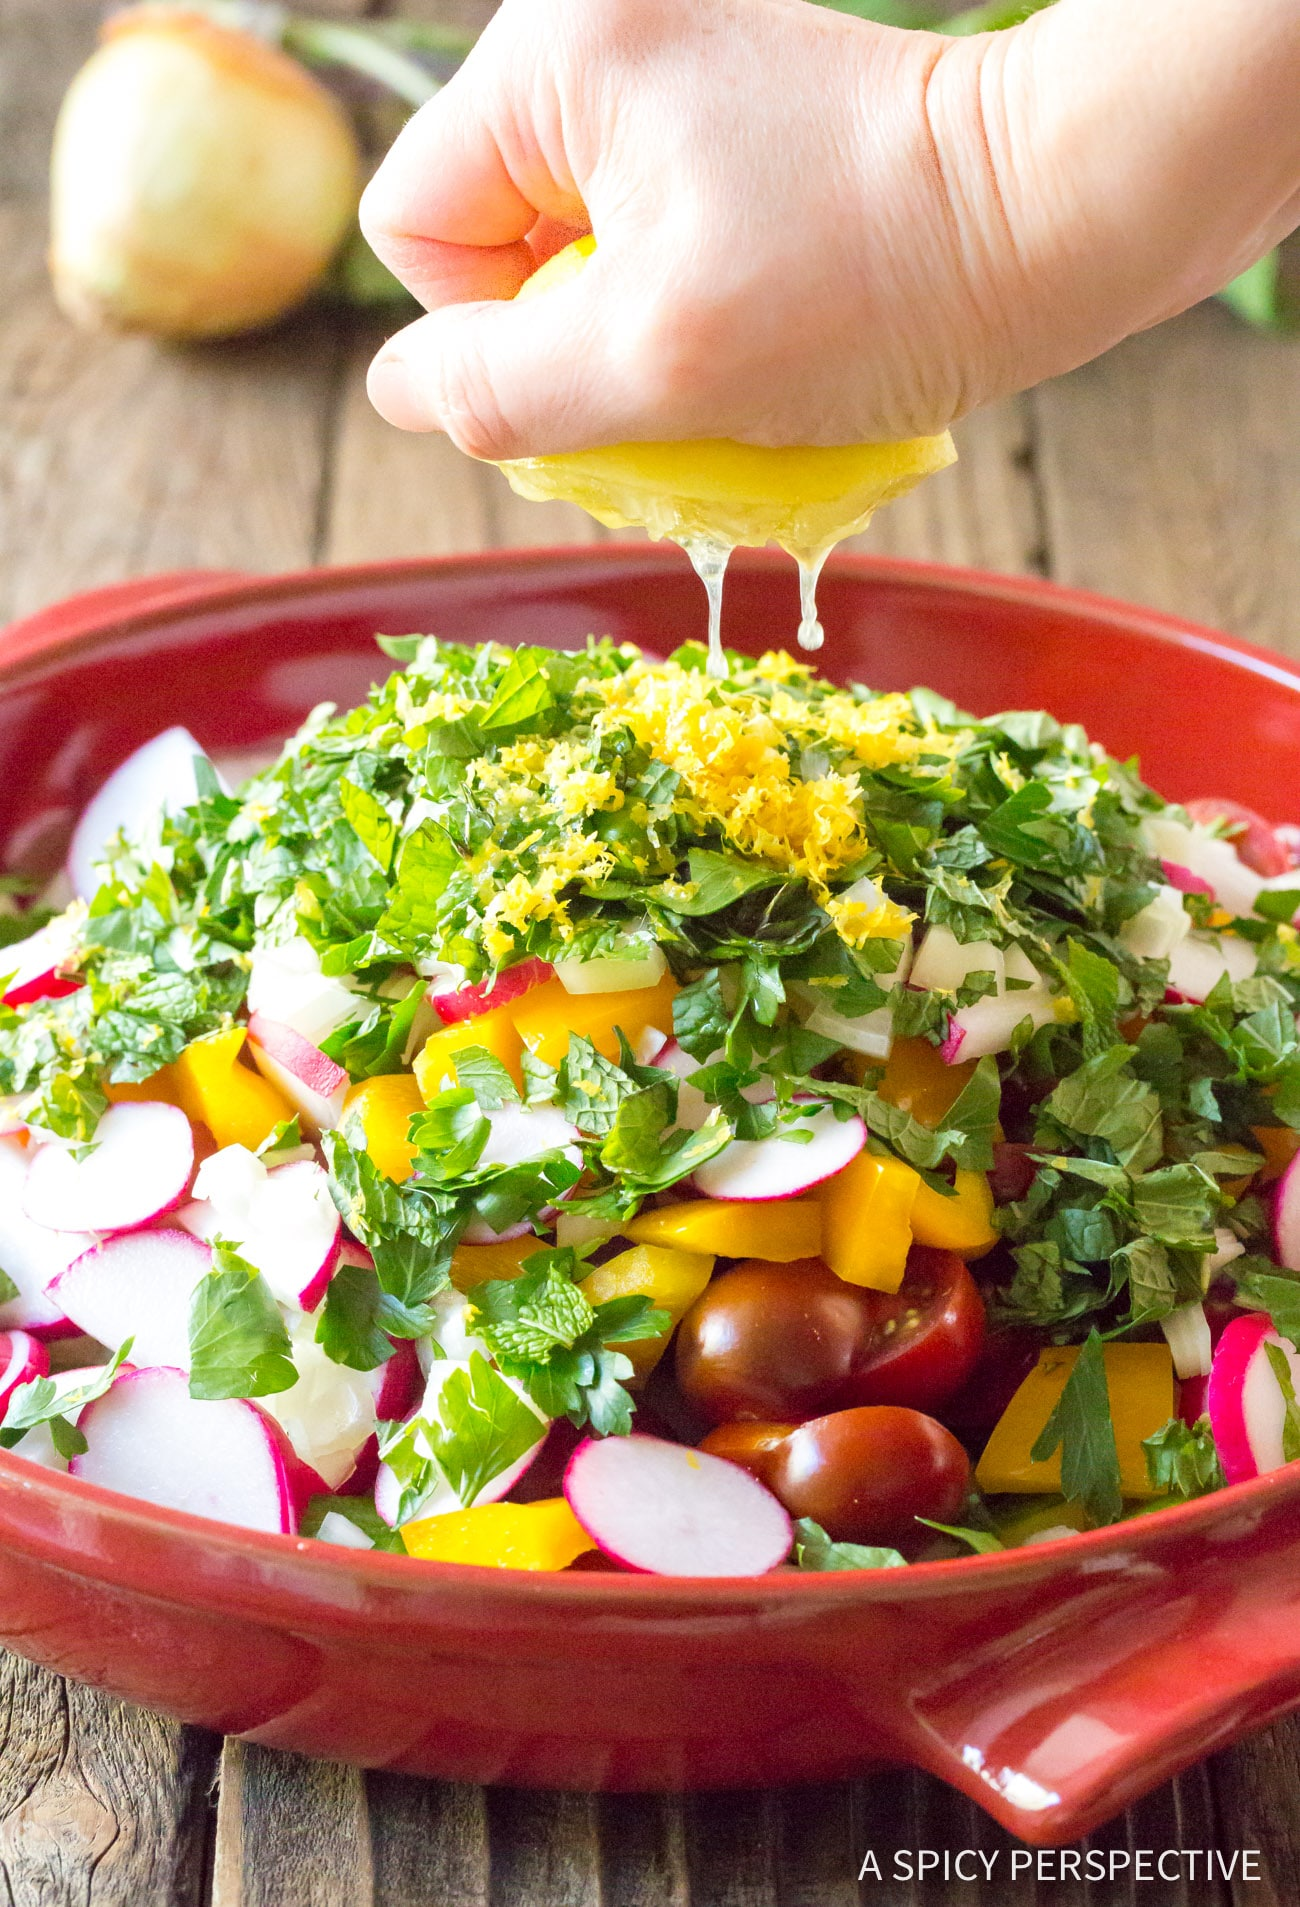 Perfect Chopped Israeli Salad with Lemon Vinaigrette Recipe #LowCarb #GlutenFree & #Vegan